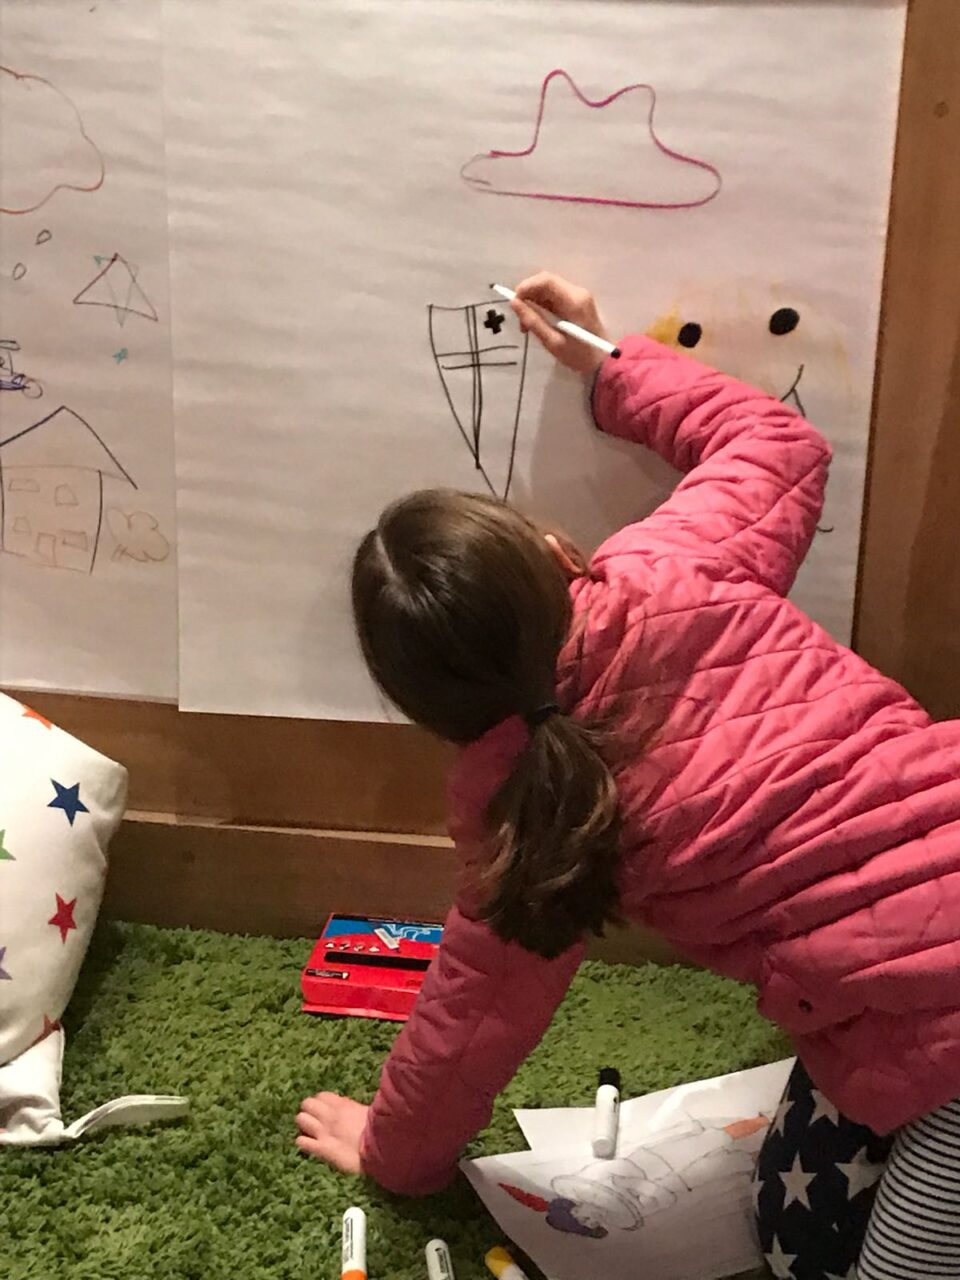 A child drawing a picture of a shield